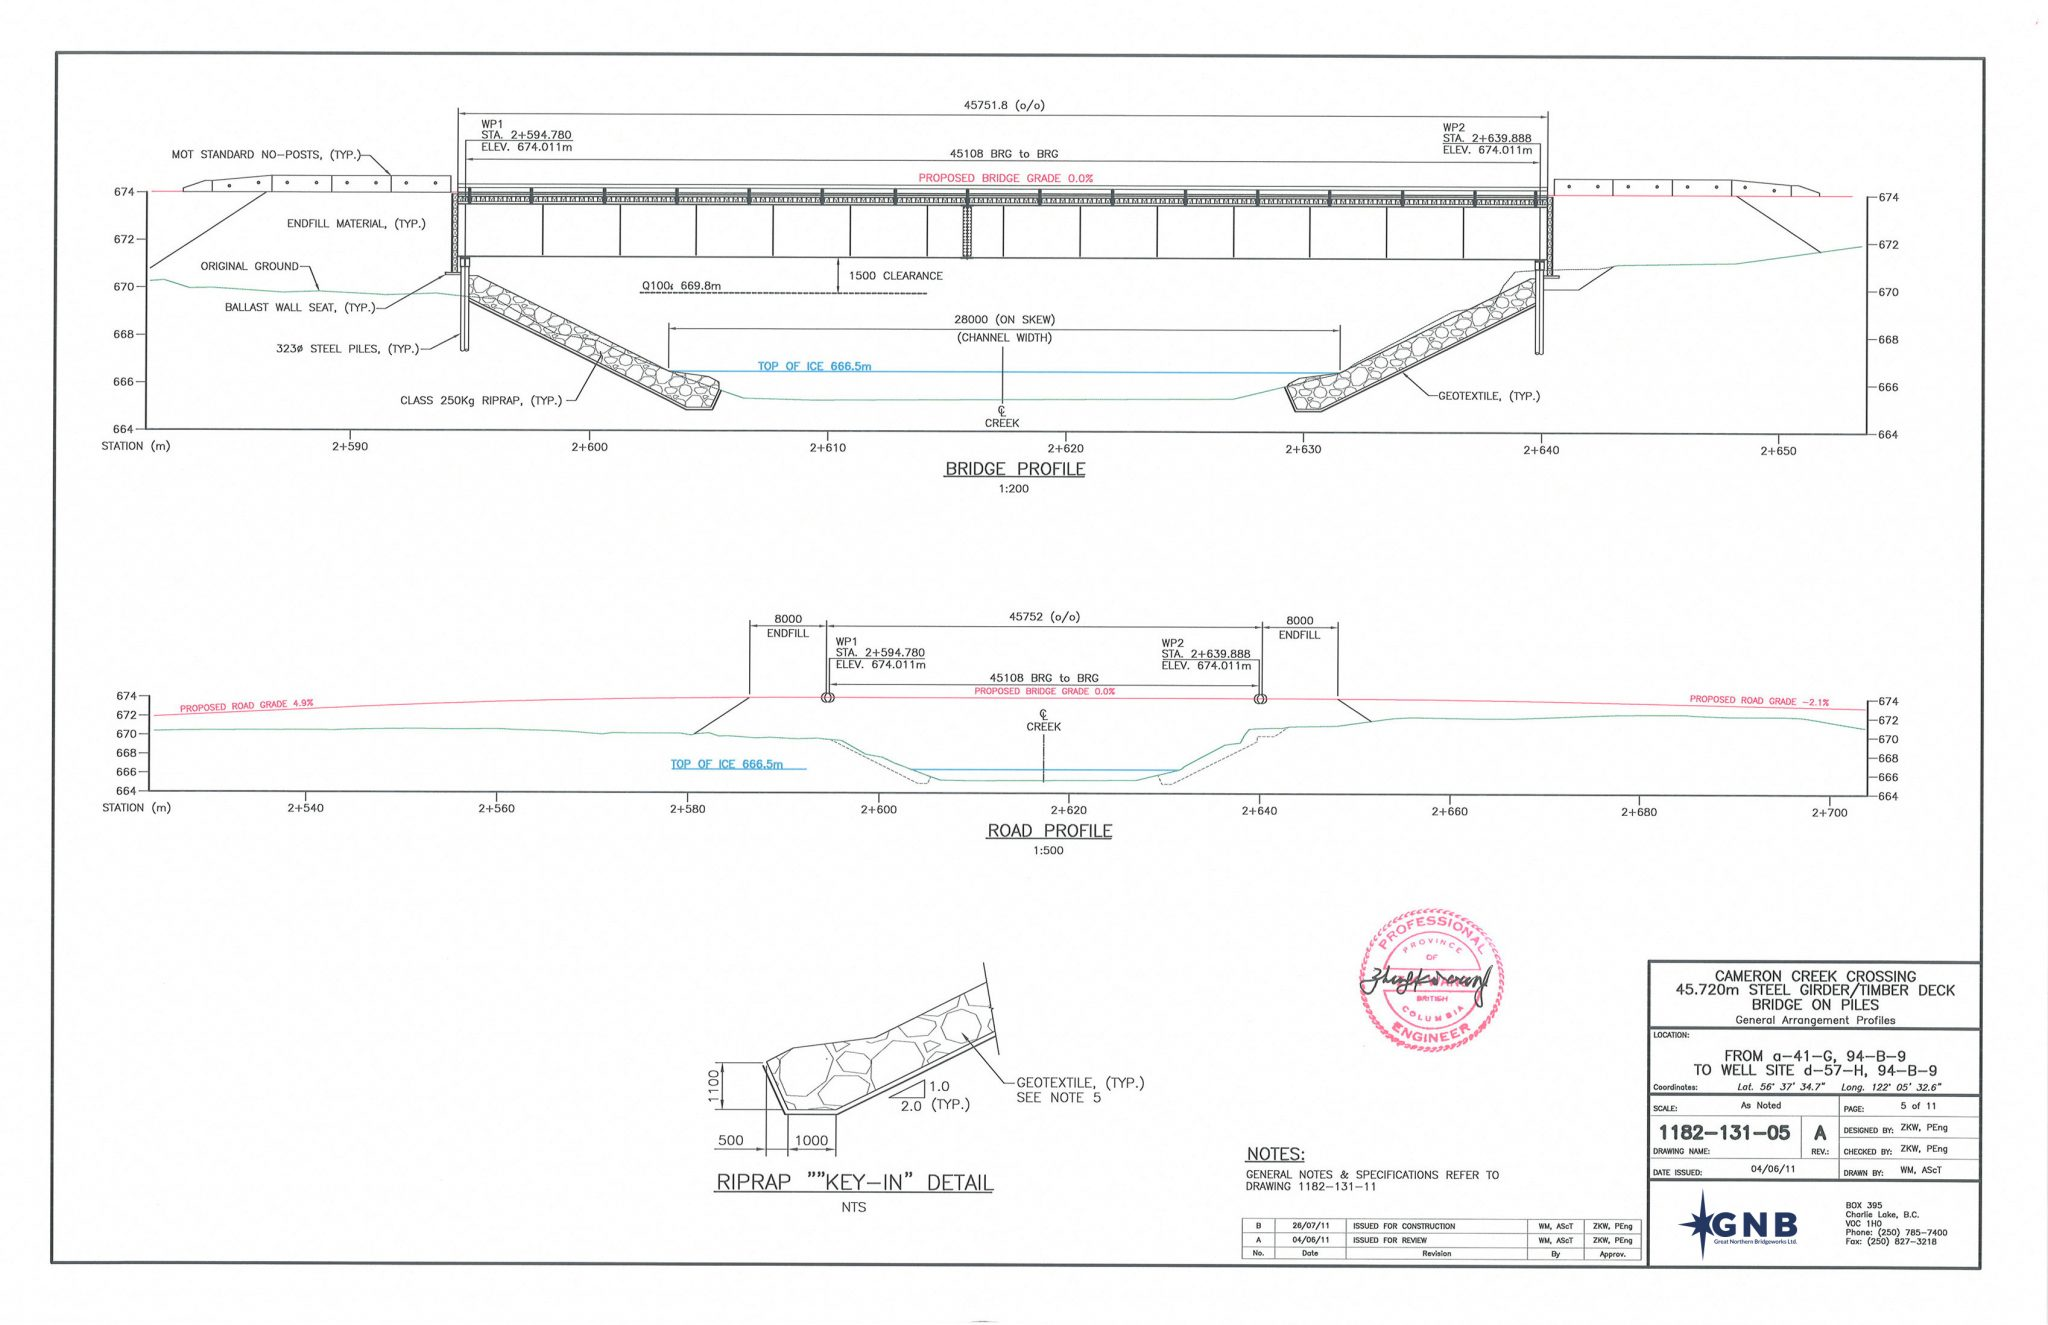 BRIDGE DESIGN- GNB Crew Energy Cameron Creek Final Design Rev A Tendered (All)(131)(Signed)_Page_06 EDIT